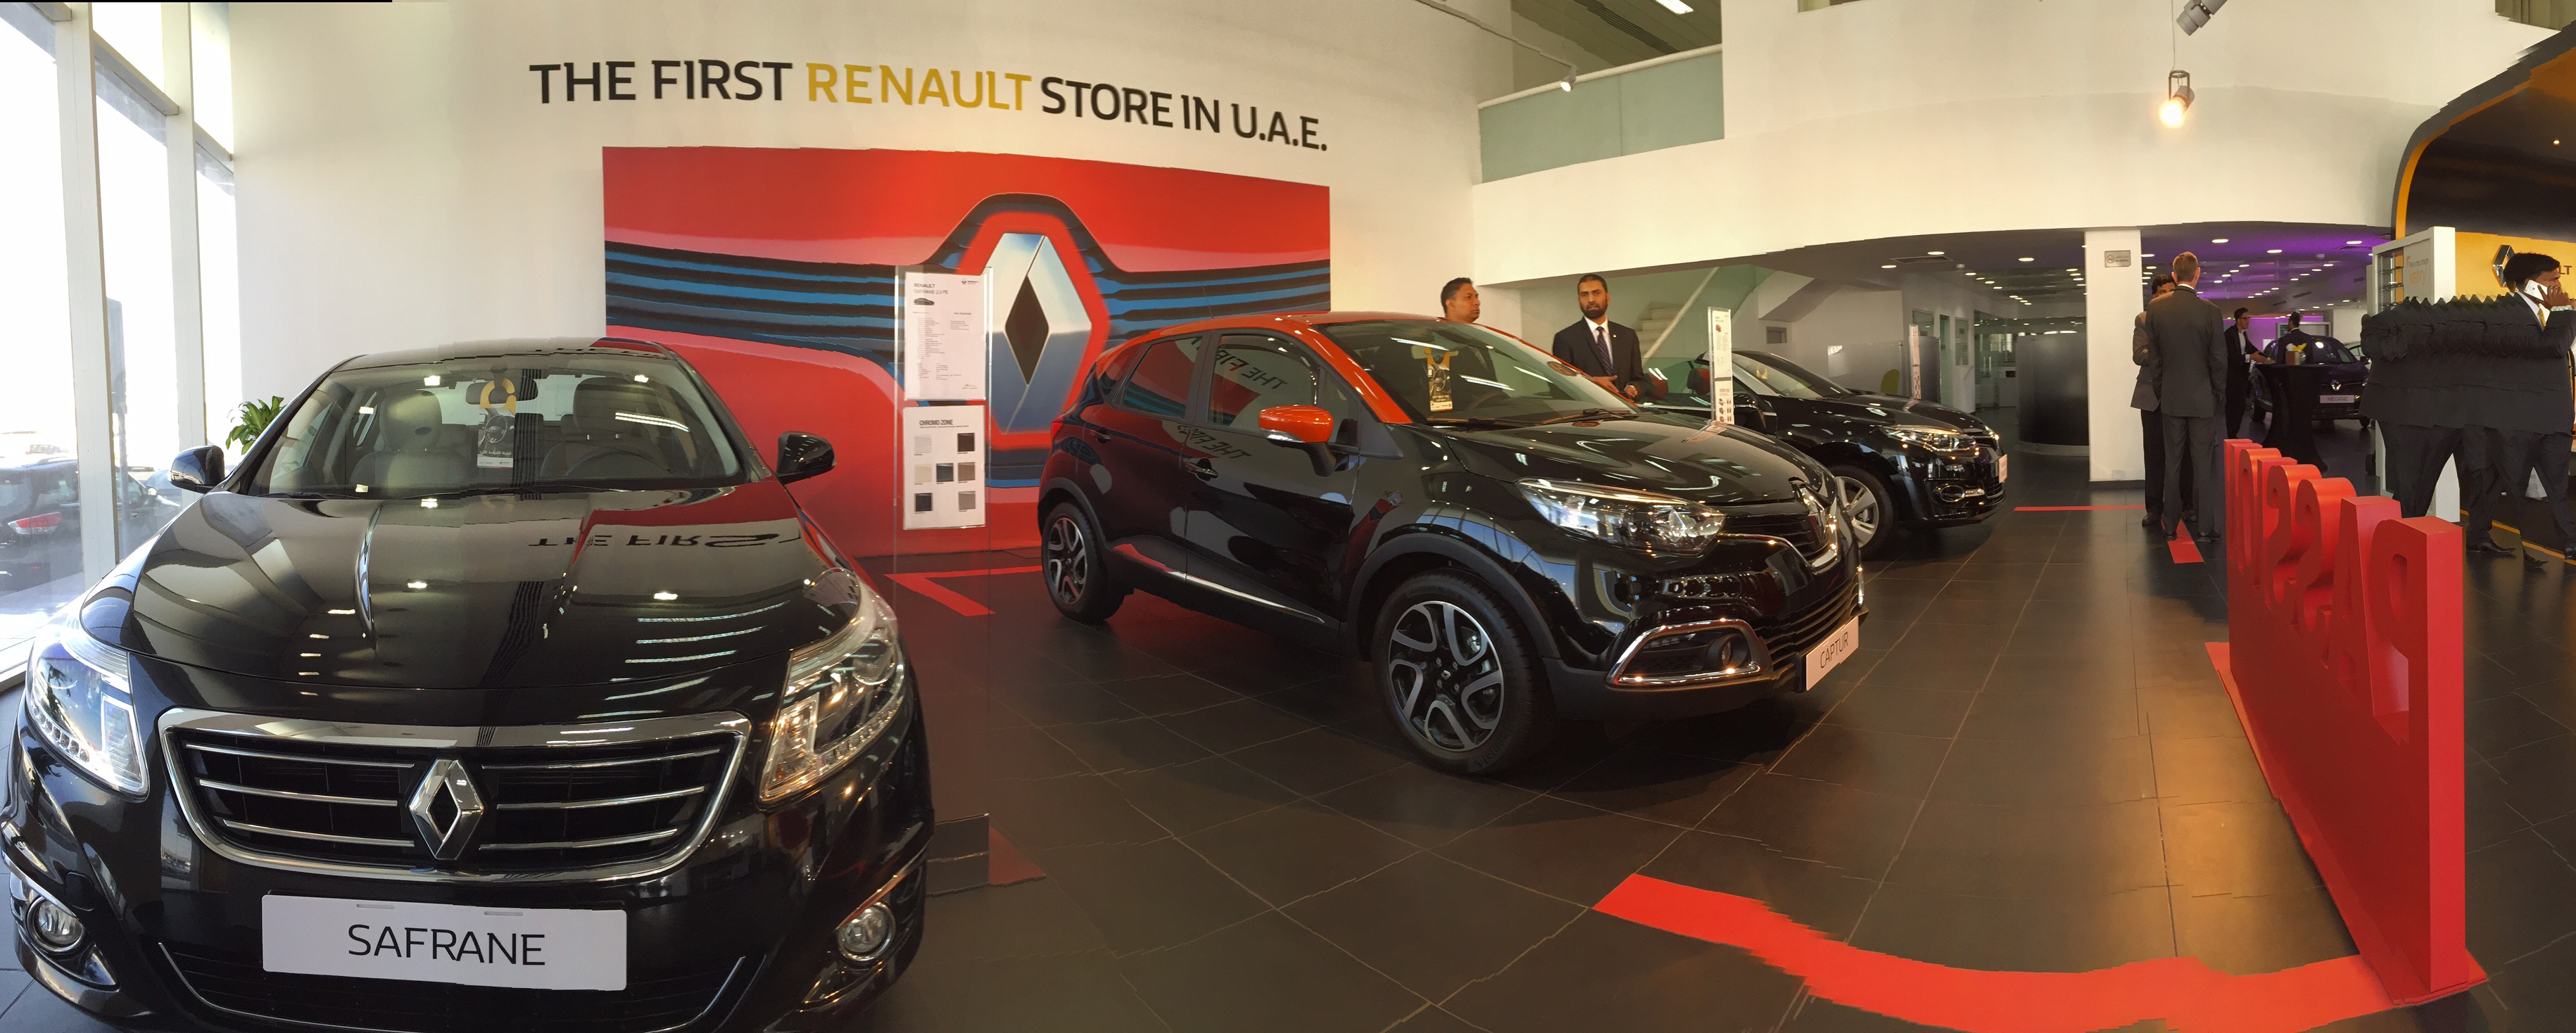 Arabian Automobiles pany Opens UAE s First Renault Store